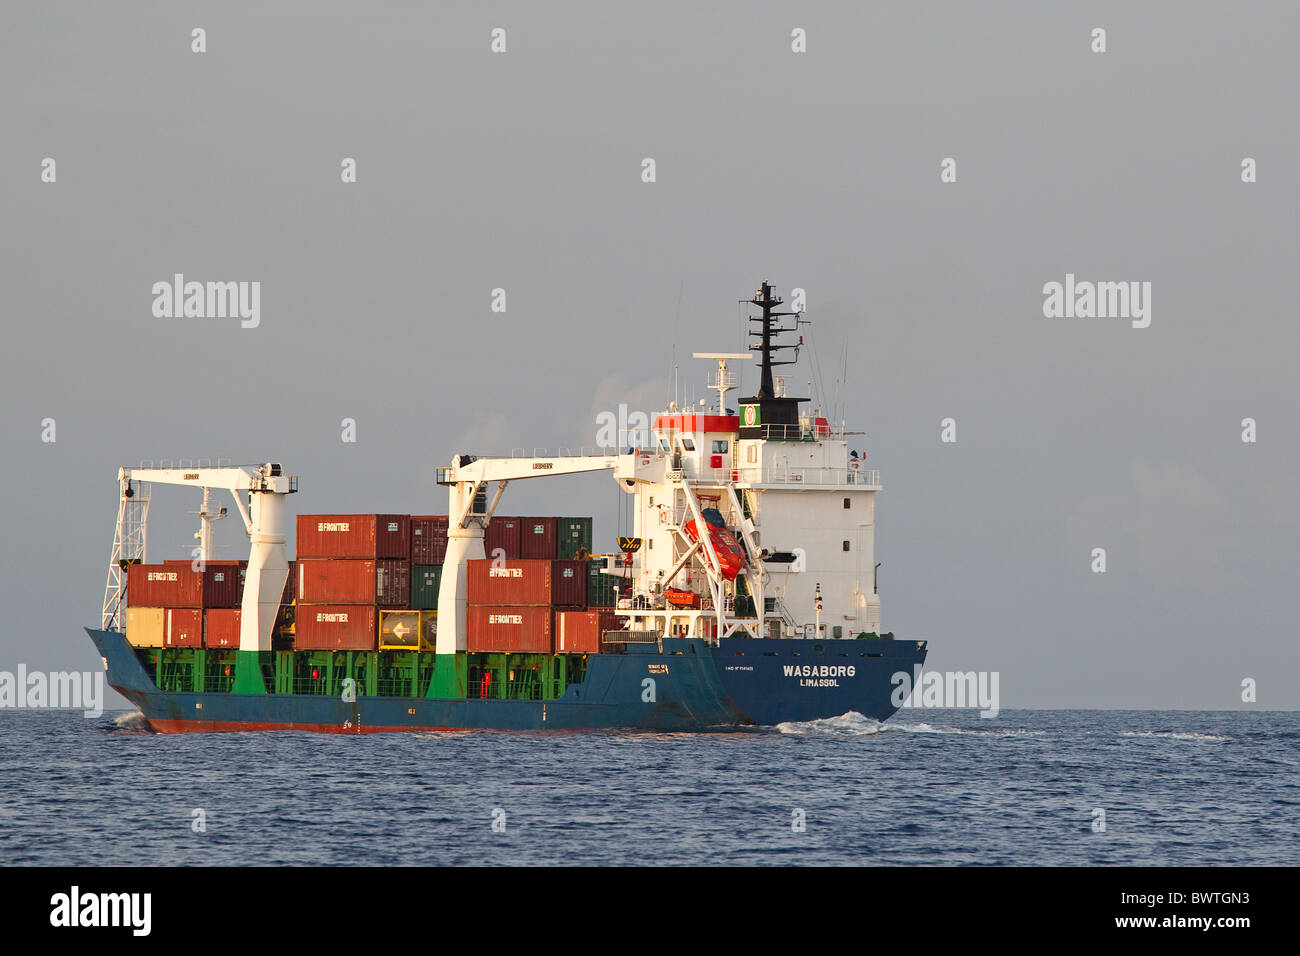 Cargo ship at sea, Atlantic Ocean, with shipping containers - Stock Image